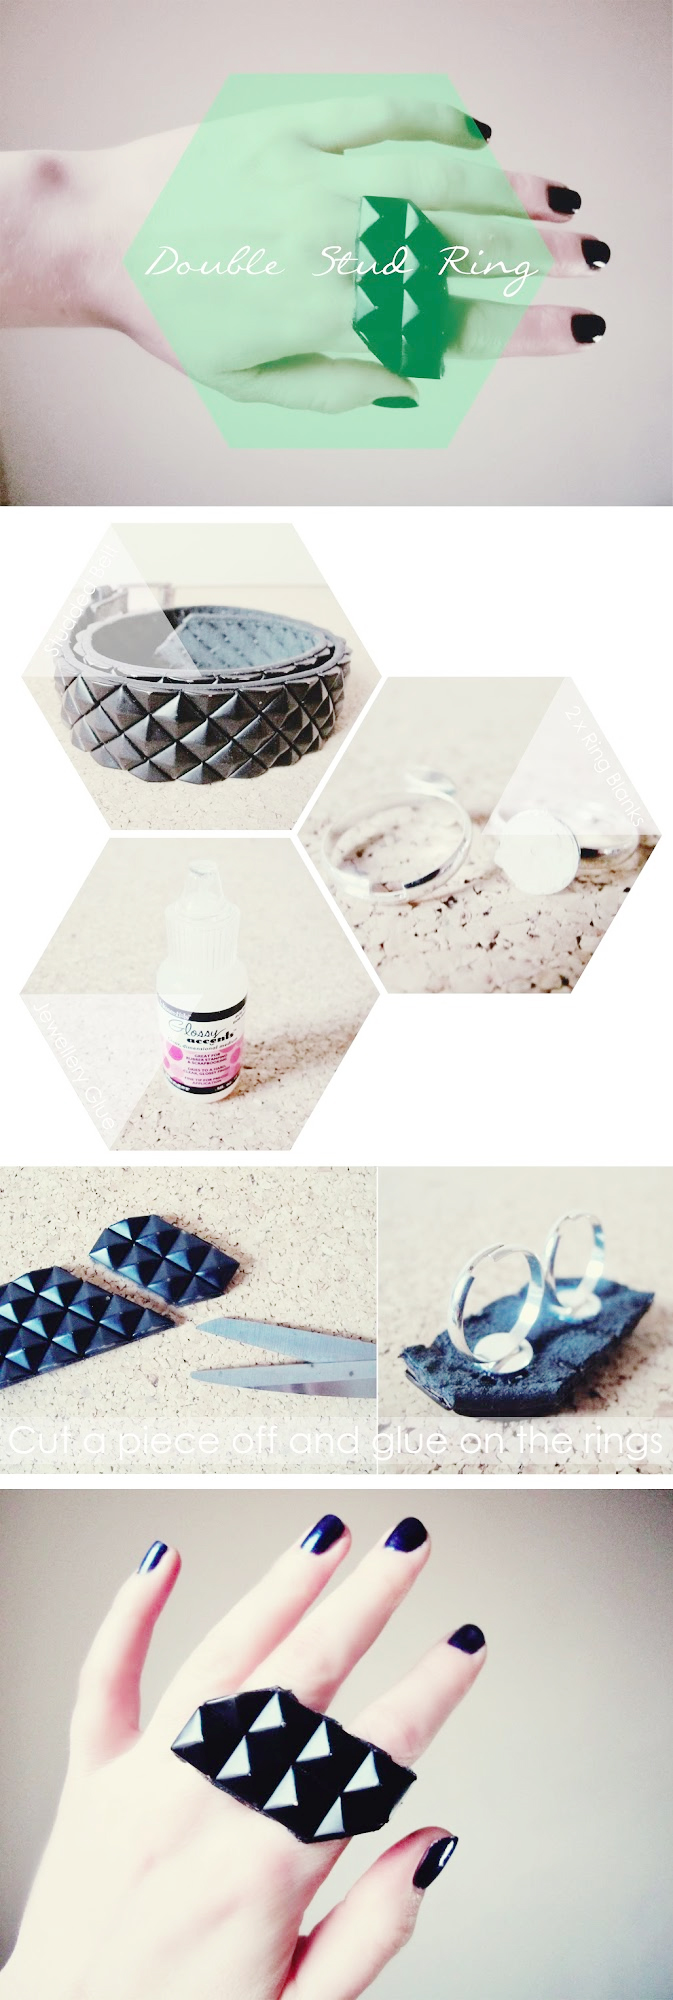 DIY Double Studded Ring